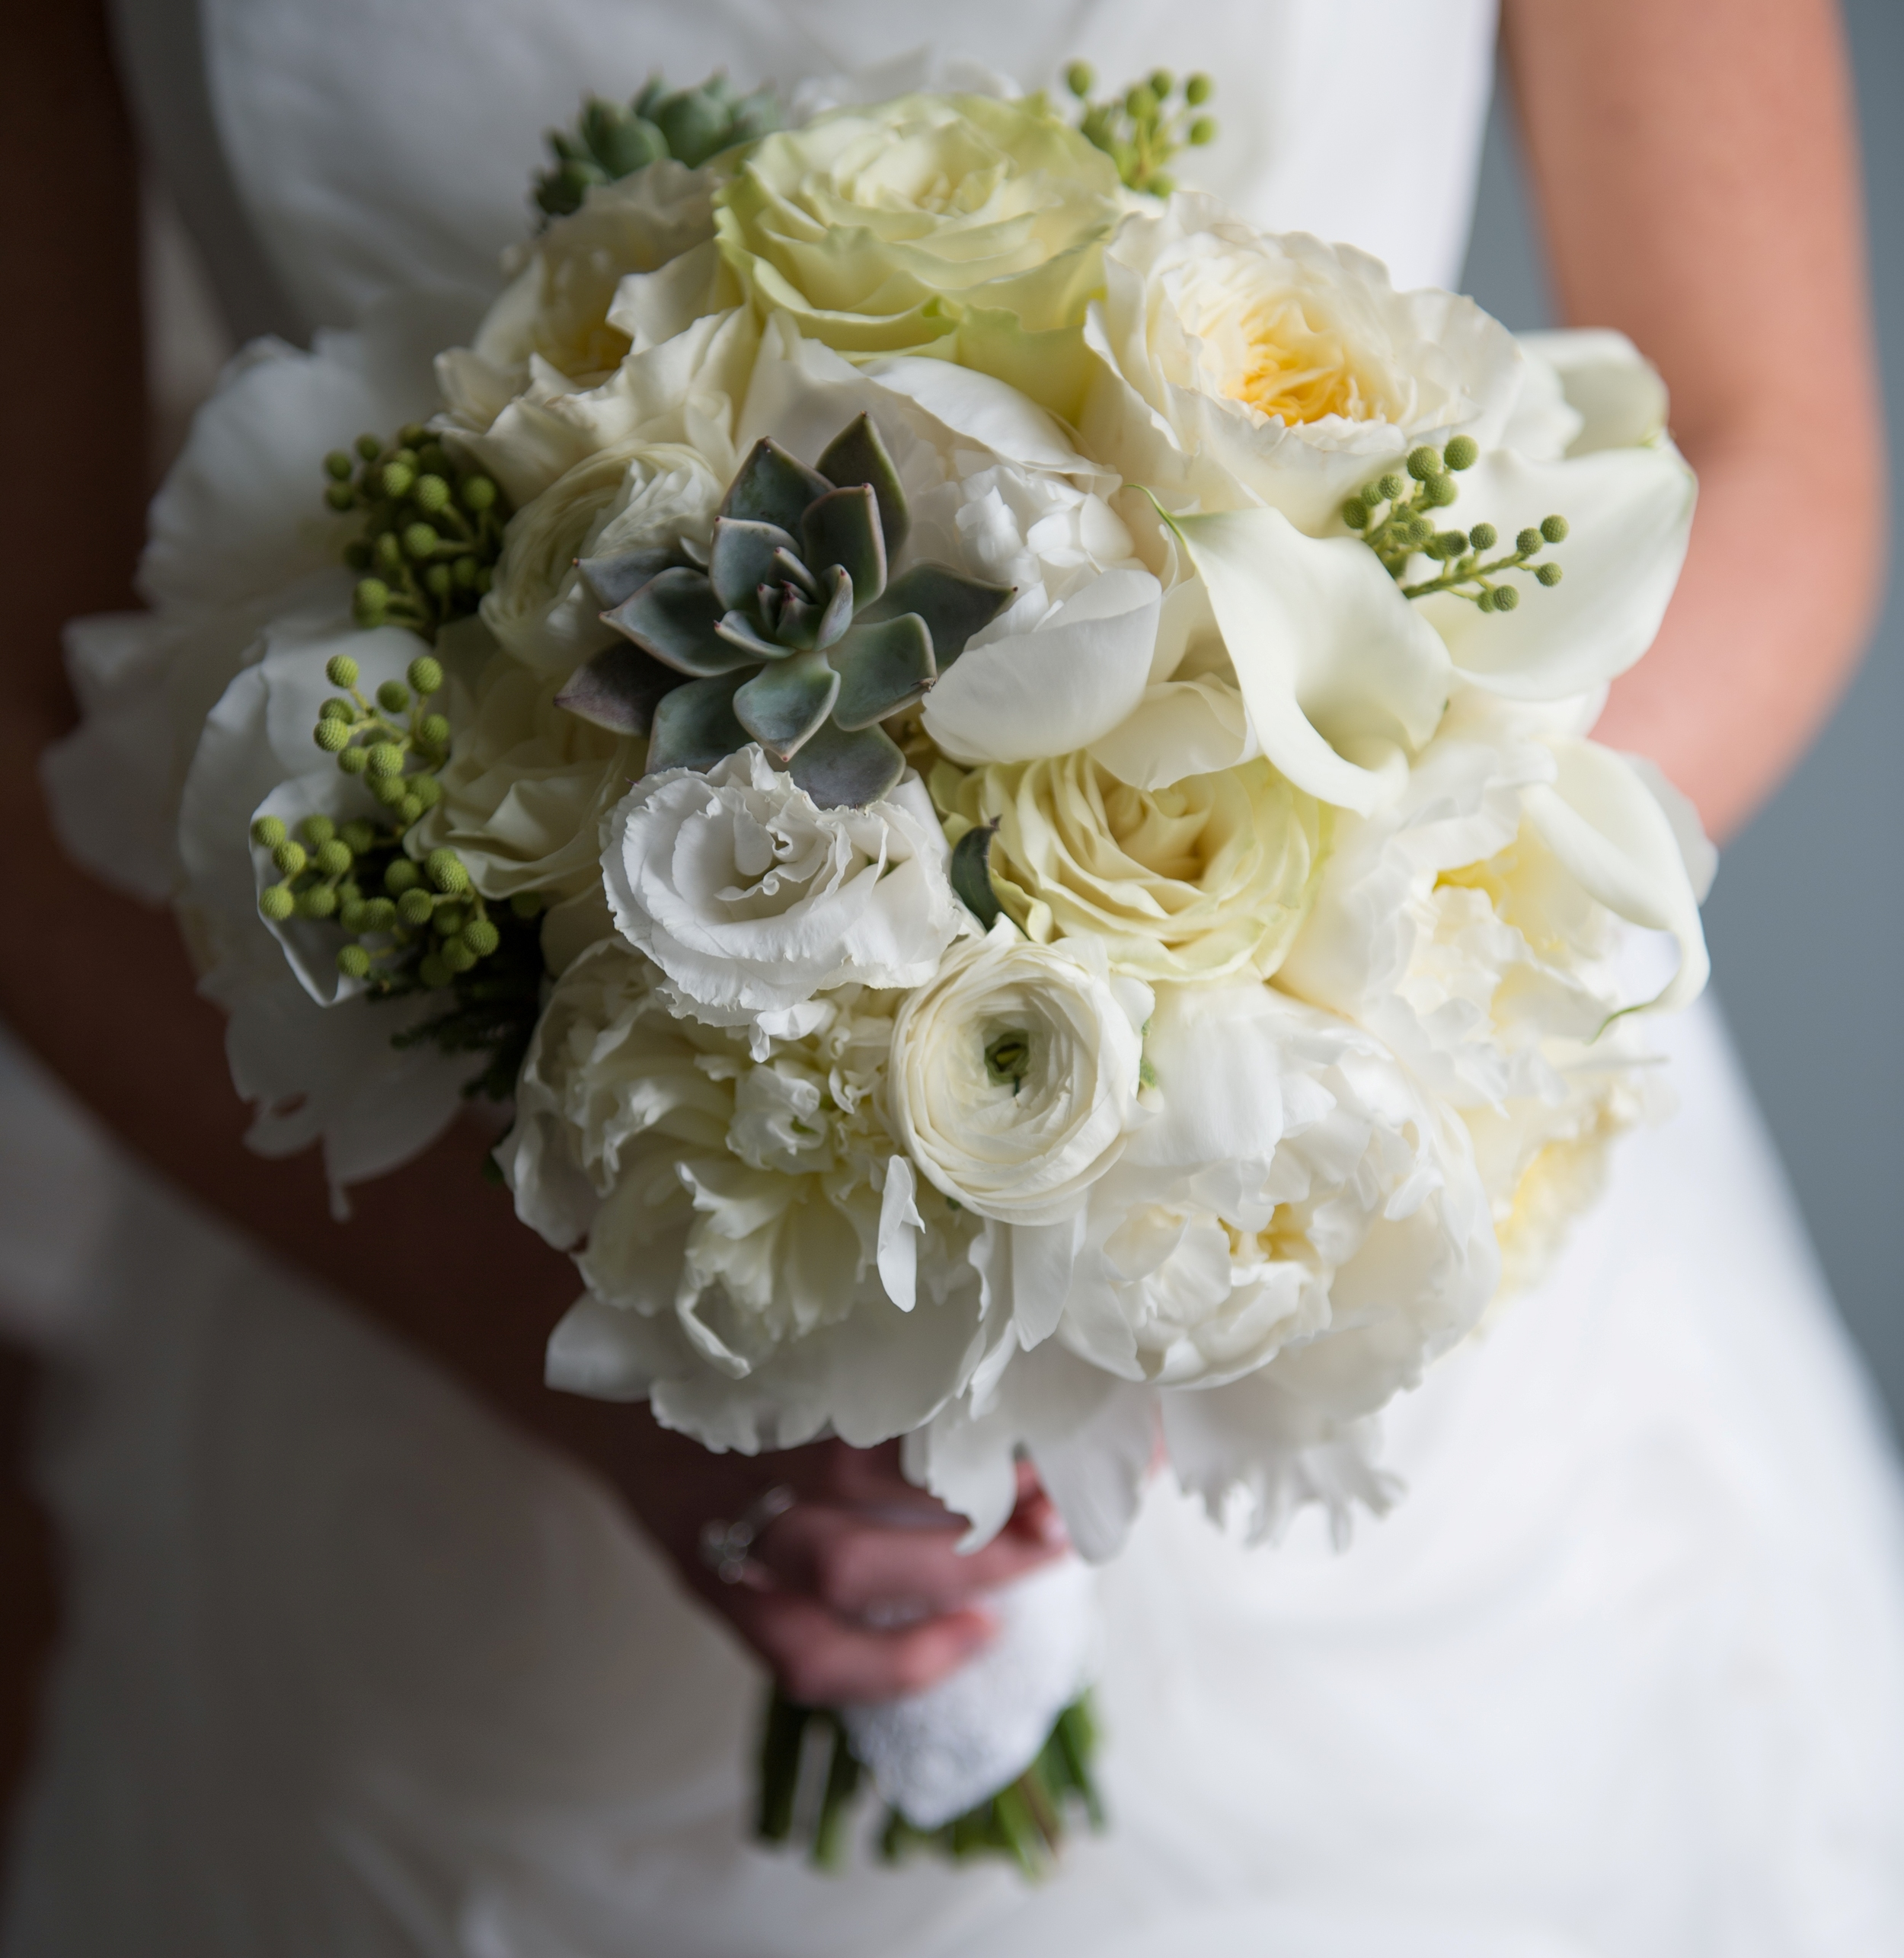 The most amazing bouquet ever from Fleurescent . SO SO incredible.